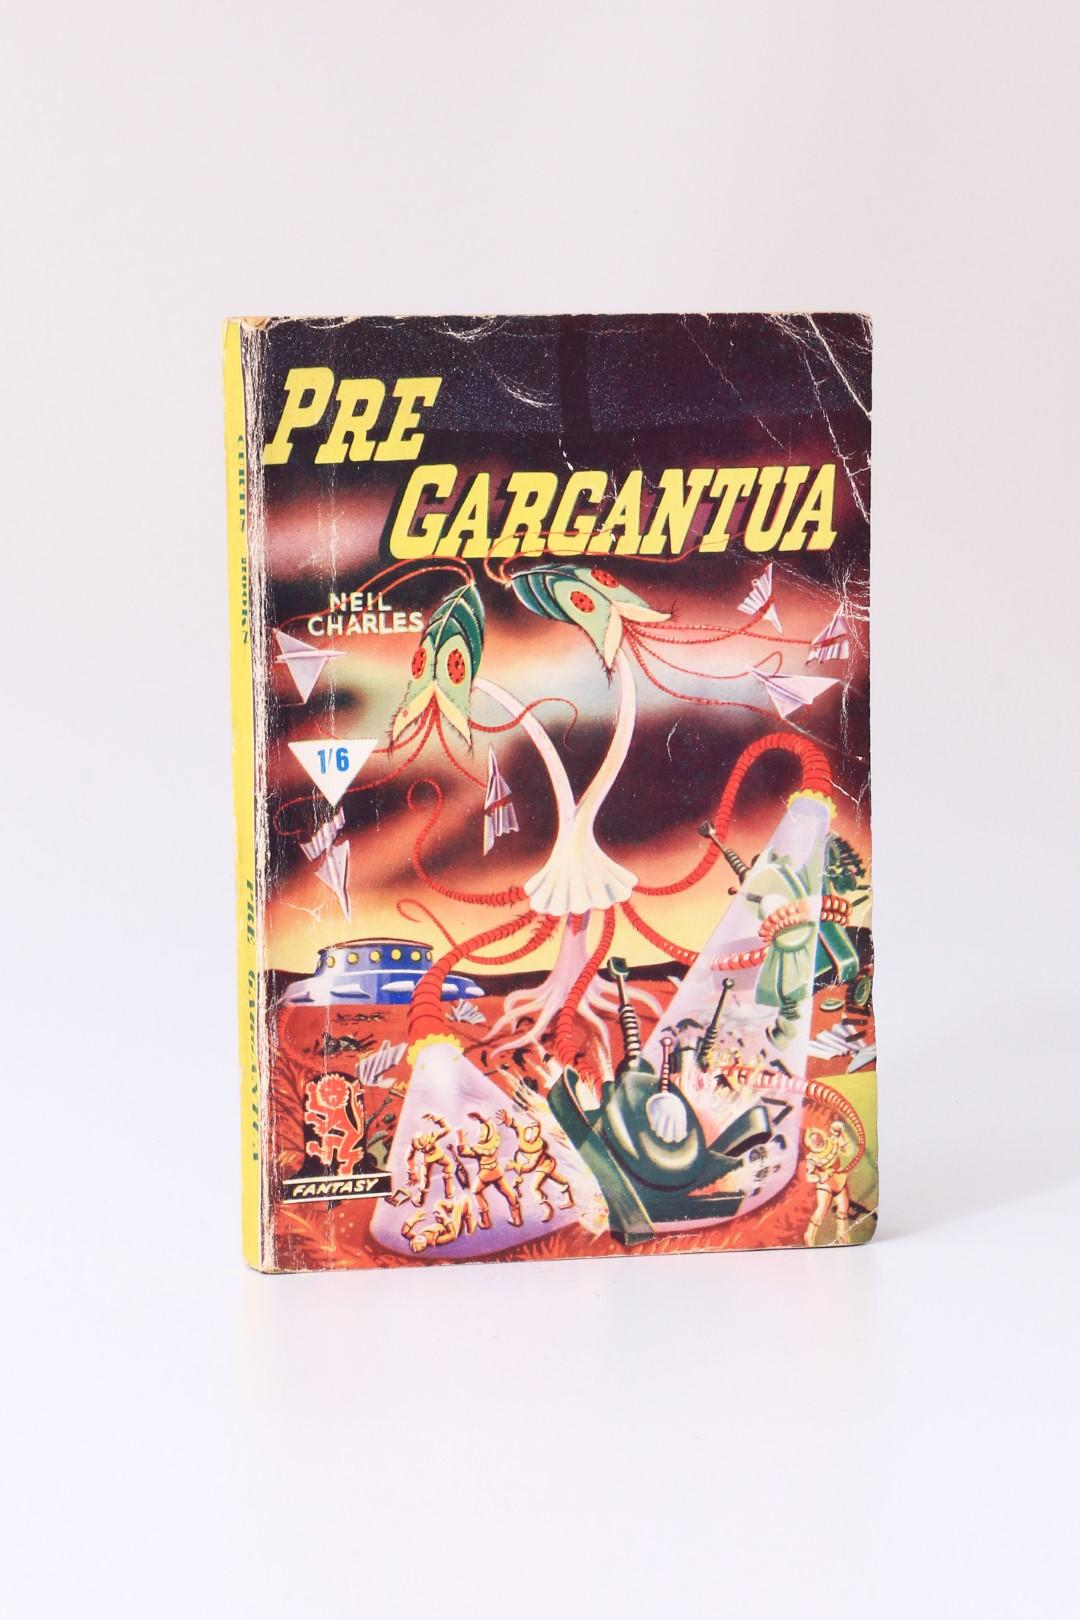 Neil Charles - Pre Gargantua - Curtis Warren, 1953, First Edition.